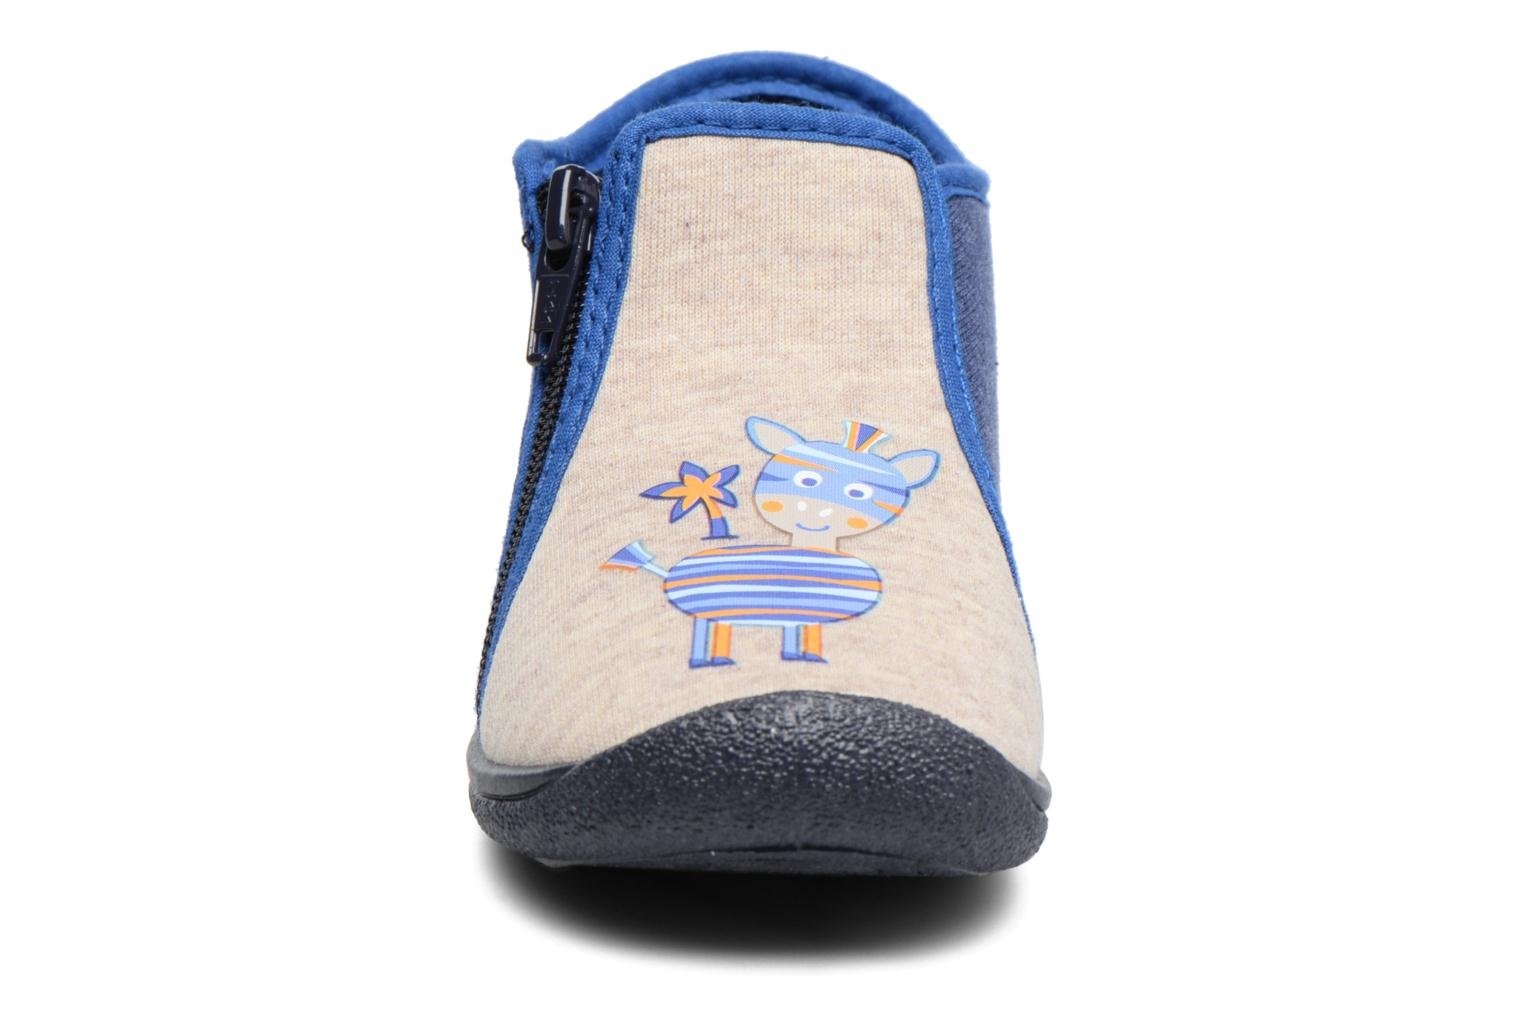 Chaussons Rondinaud GESSY Multicolore vue portées chaussures